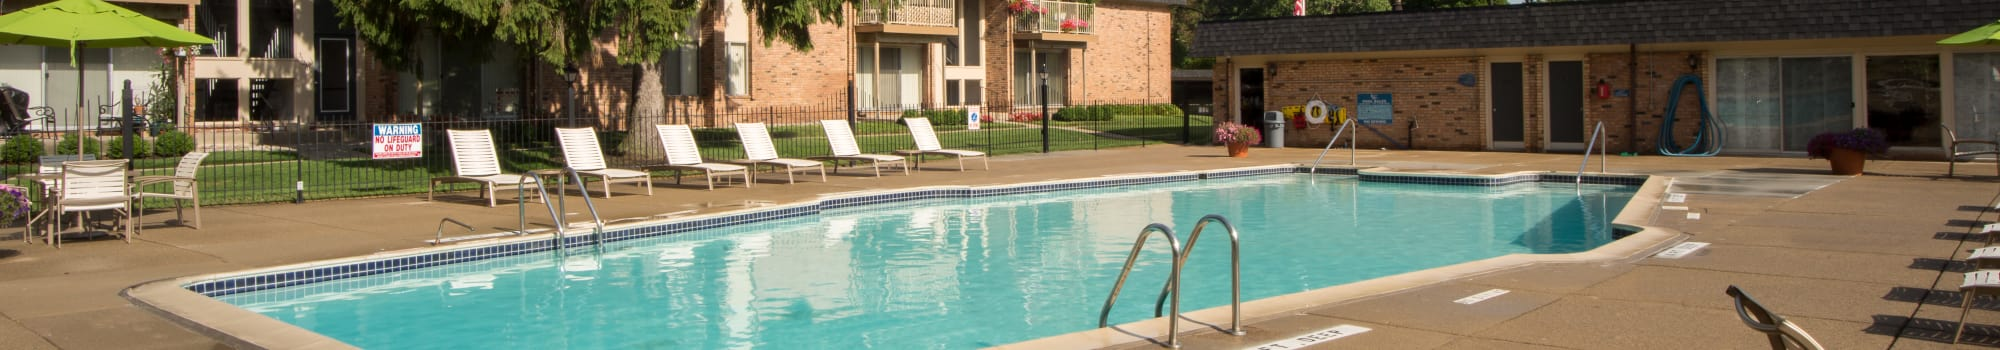 Request a tour at Kensington Manor Apartments in Farmington, Michigan